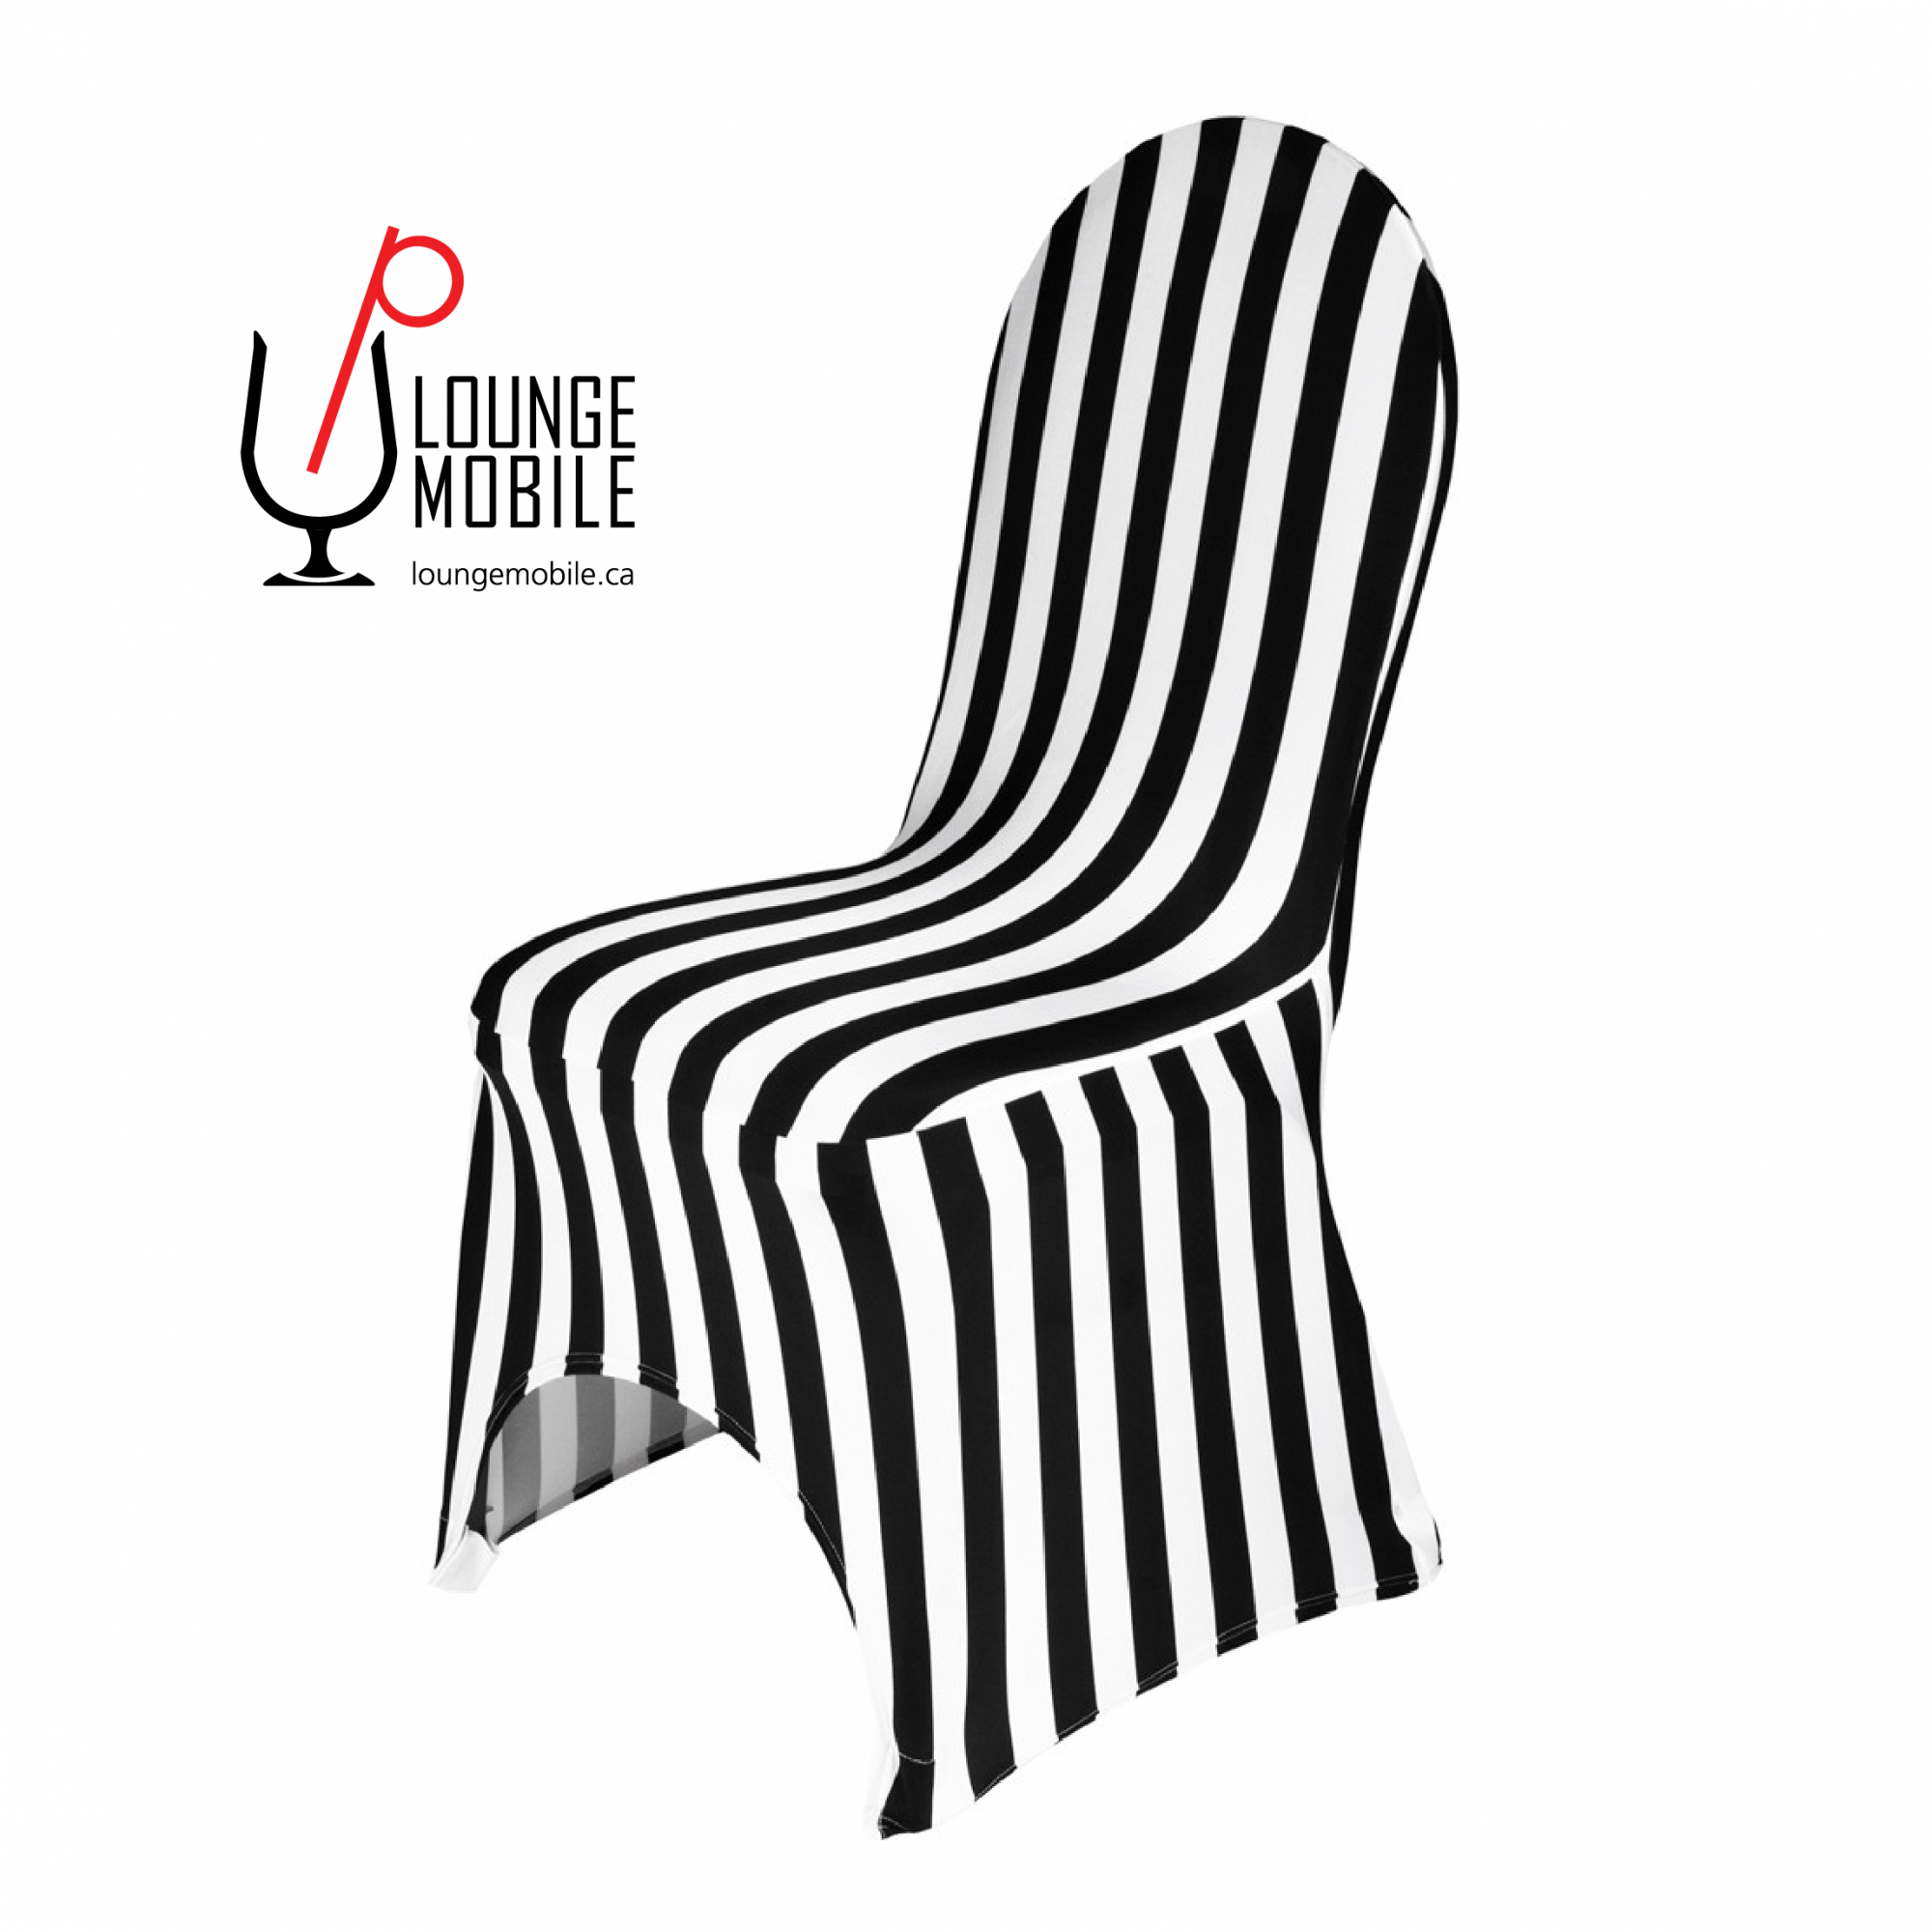 housse de chaise lycra ray e noir et blanc housses de chaises les productions c l brason. Black Bedroom Furniture Sets. Home Design Ideas